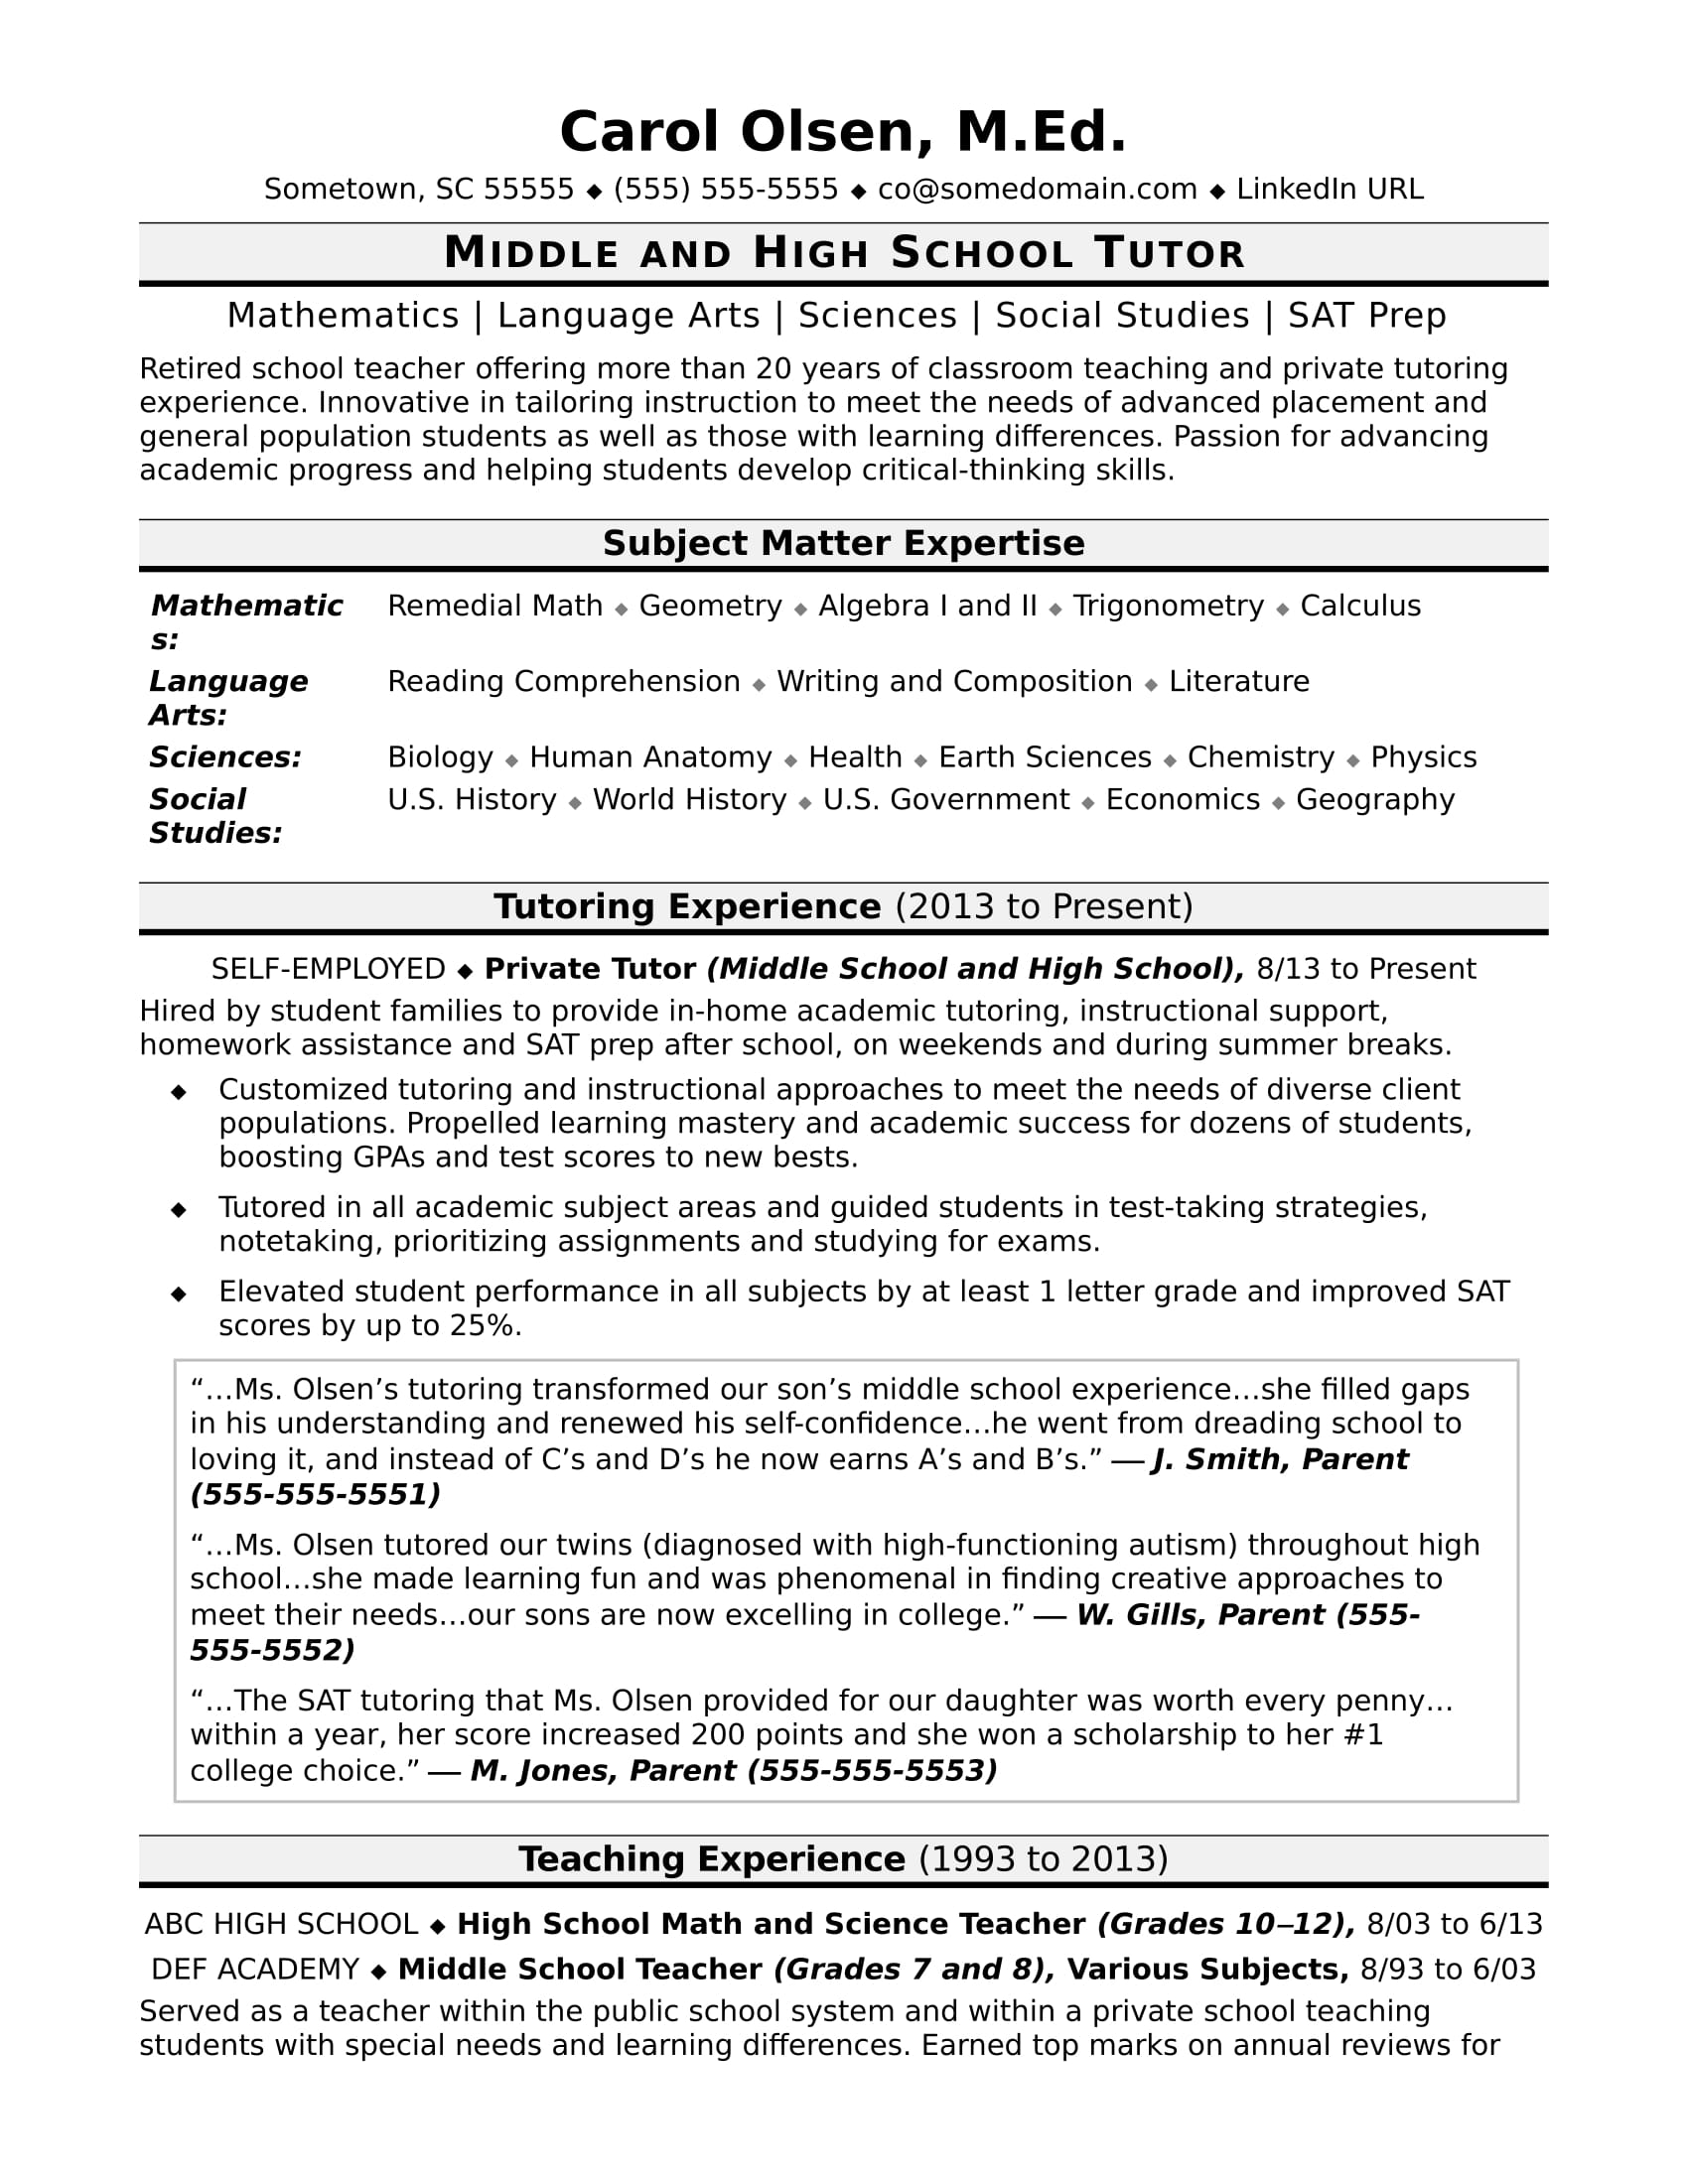 tutor resume sample - Math Tutor Resume